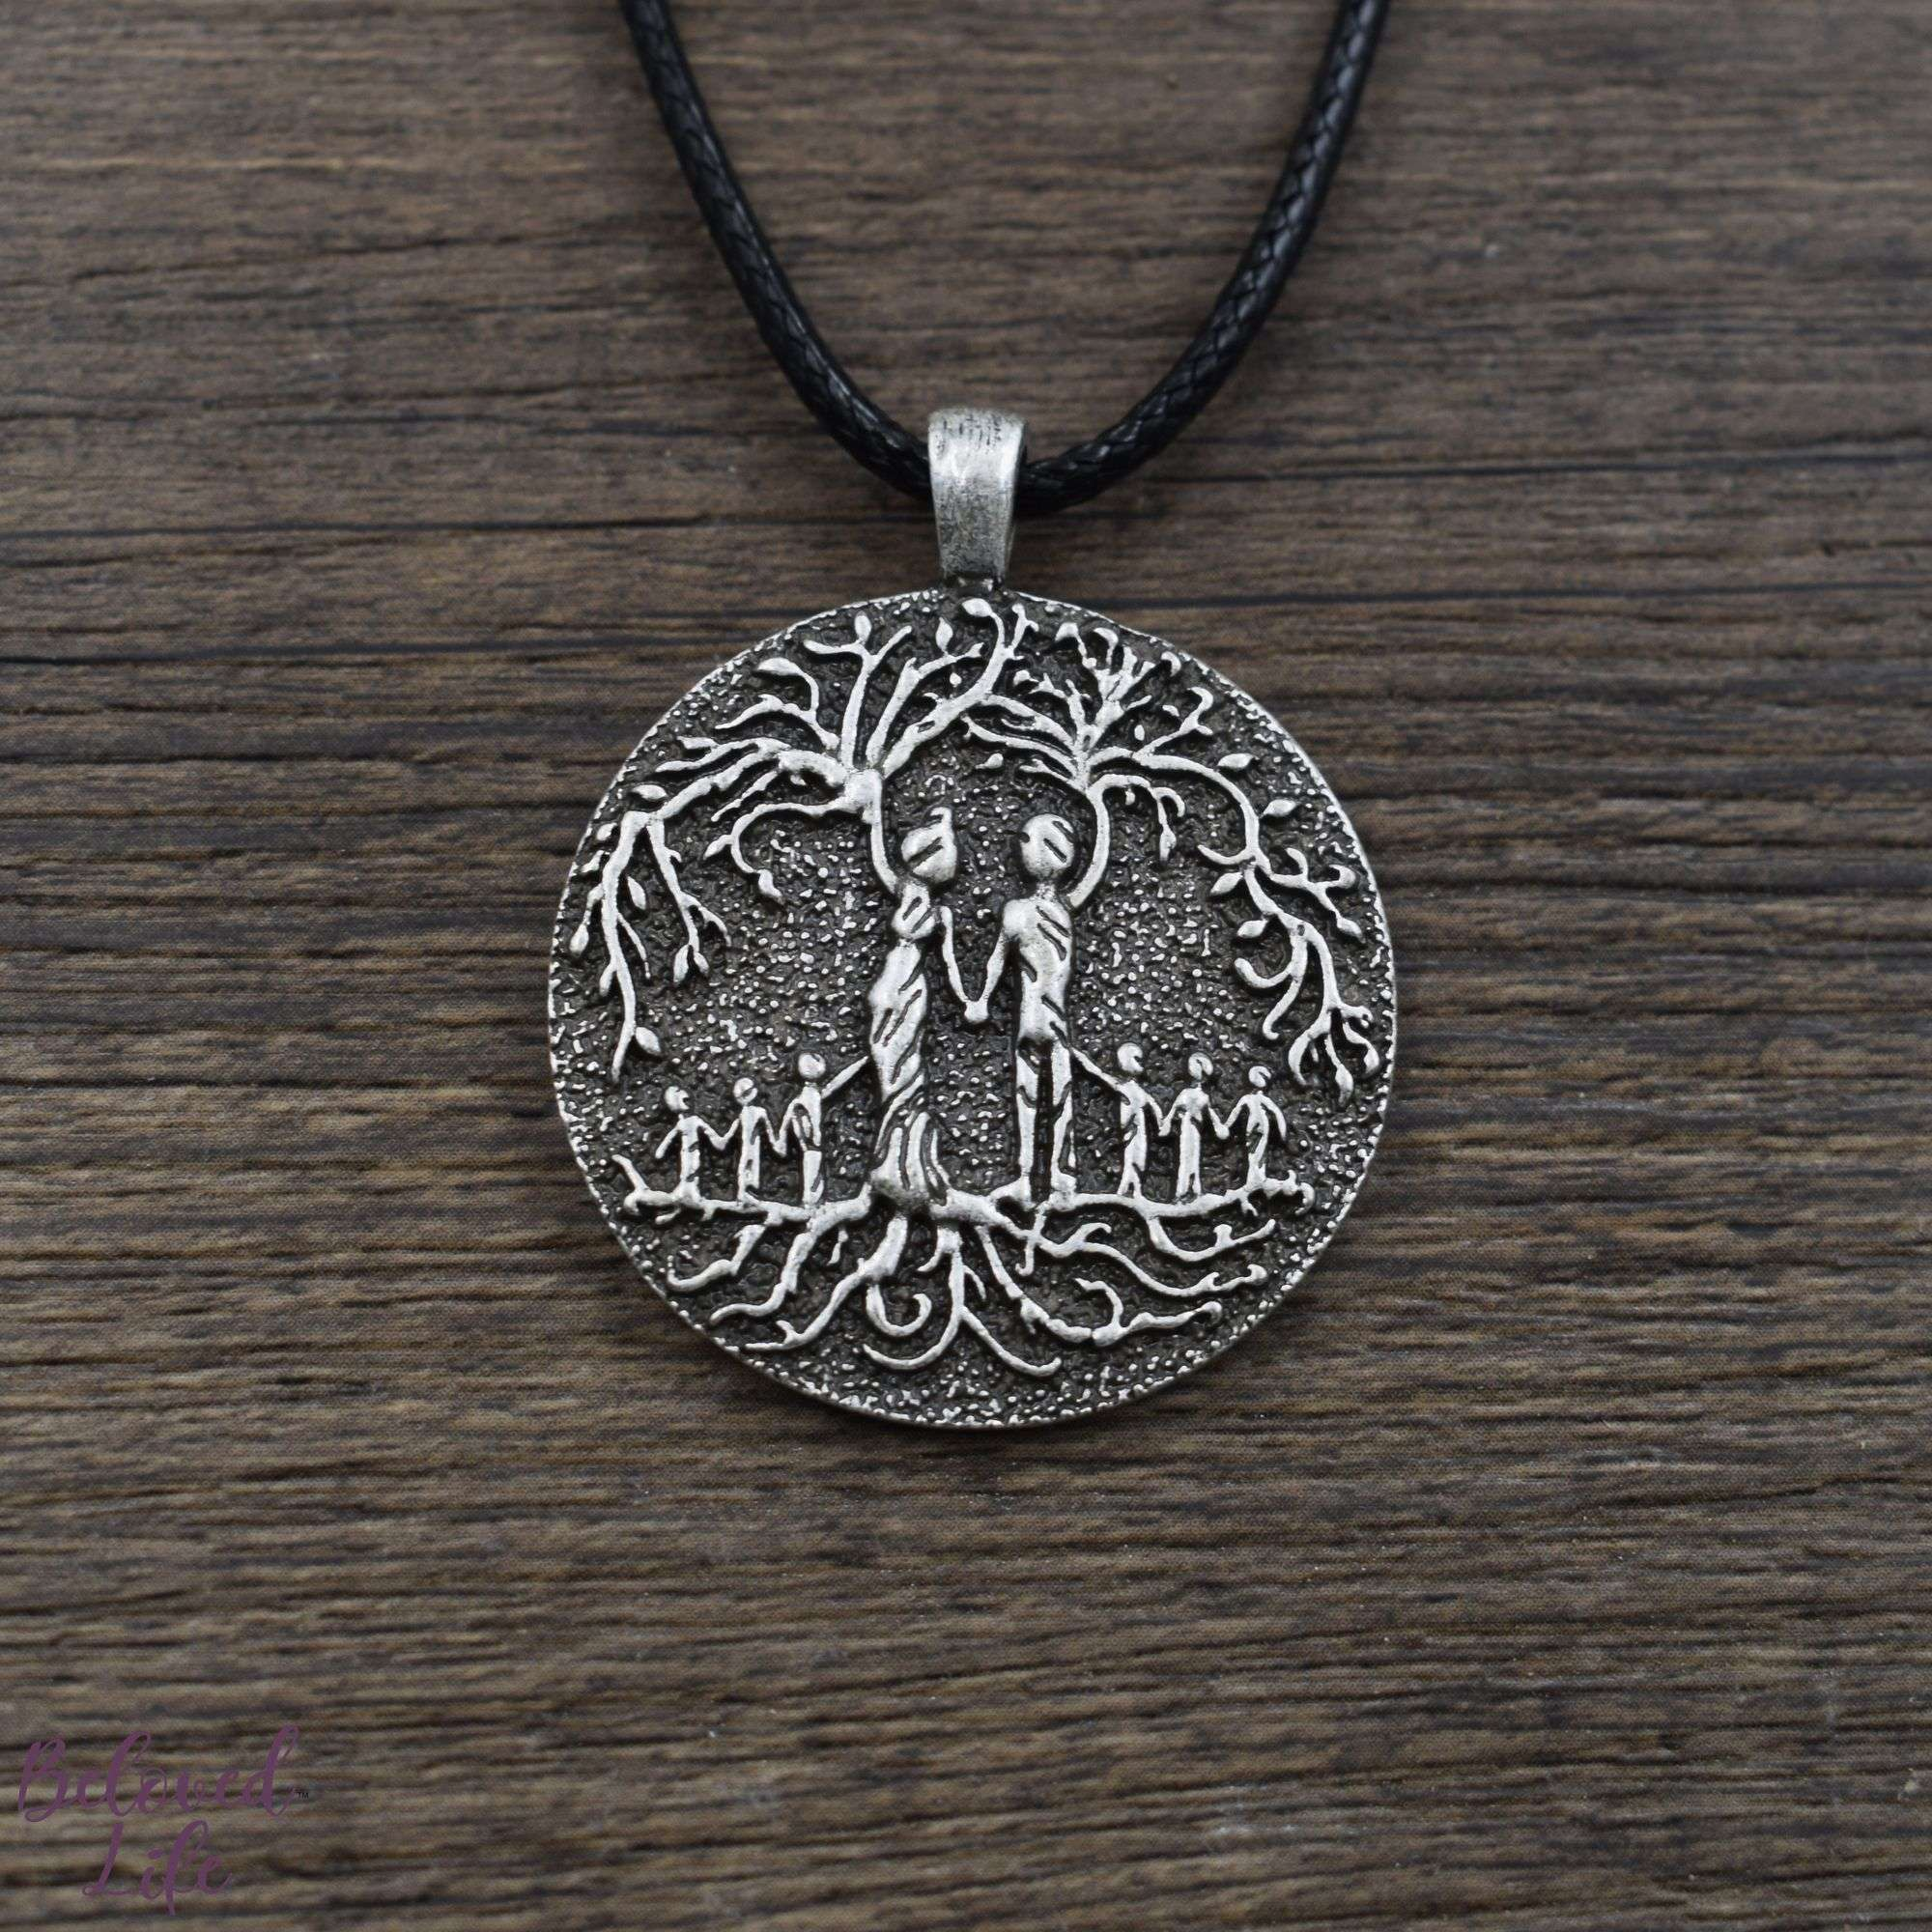 Beloved Life Jewelry: Grandparents & 6 Grandchild 'Tree of Life' Pendant Necklace [Silver]